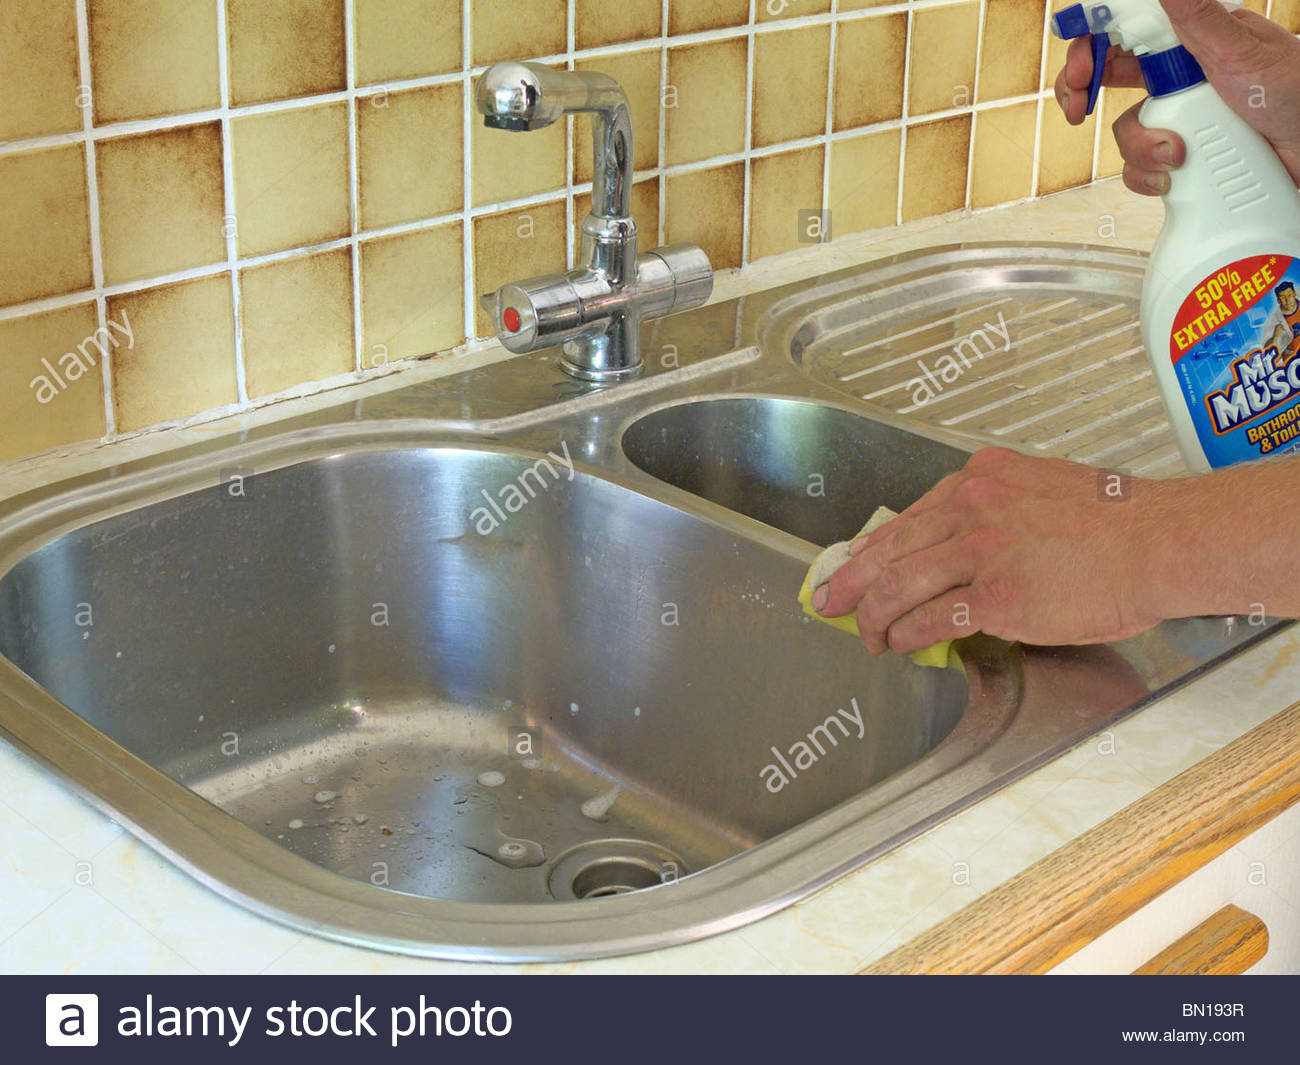 Man Cleaning Stainless Steel Kitchen Sink MODEL RELEASED Stock ...